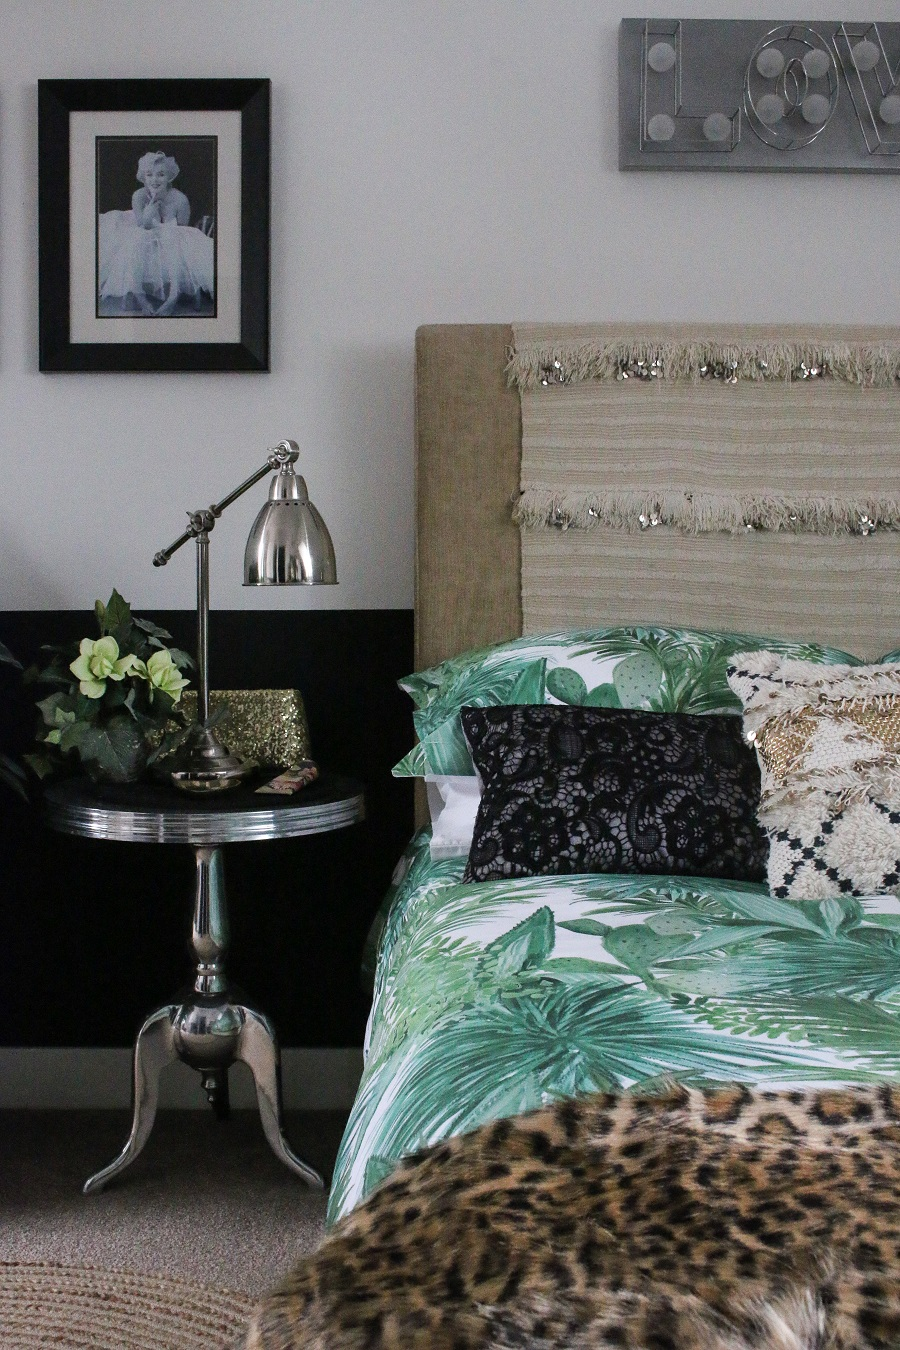 Ring The Changes in the Bedroom With Just a Change of Bedding